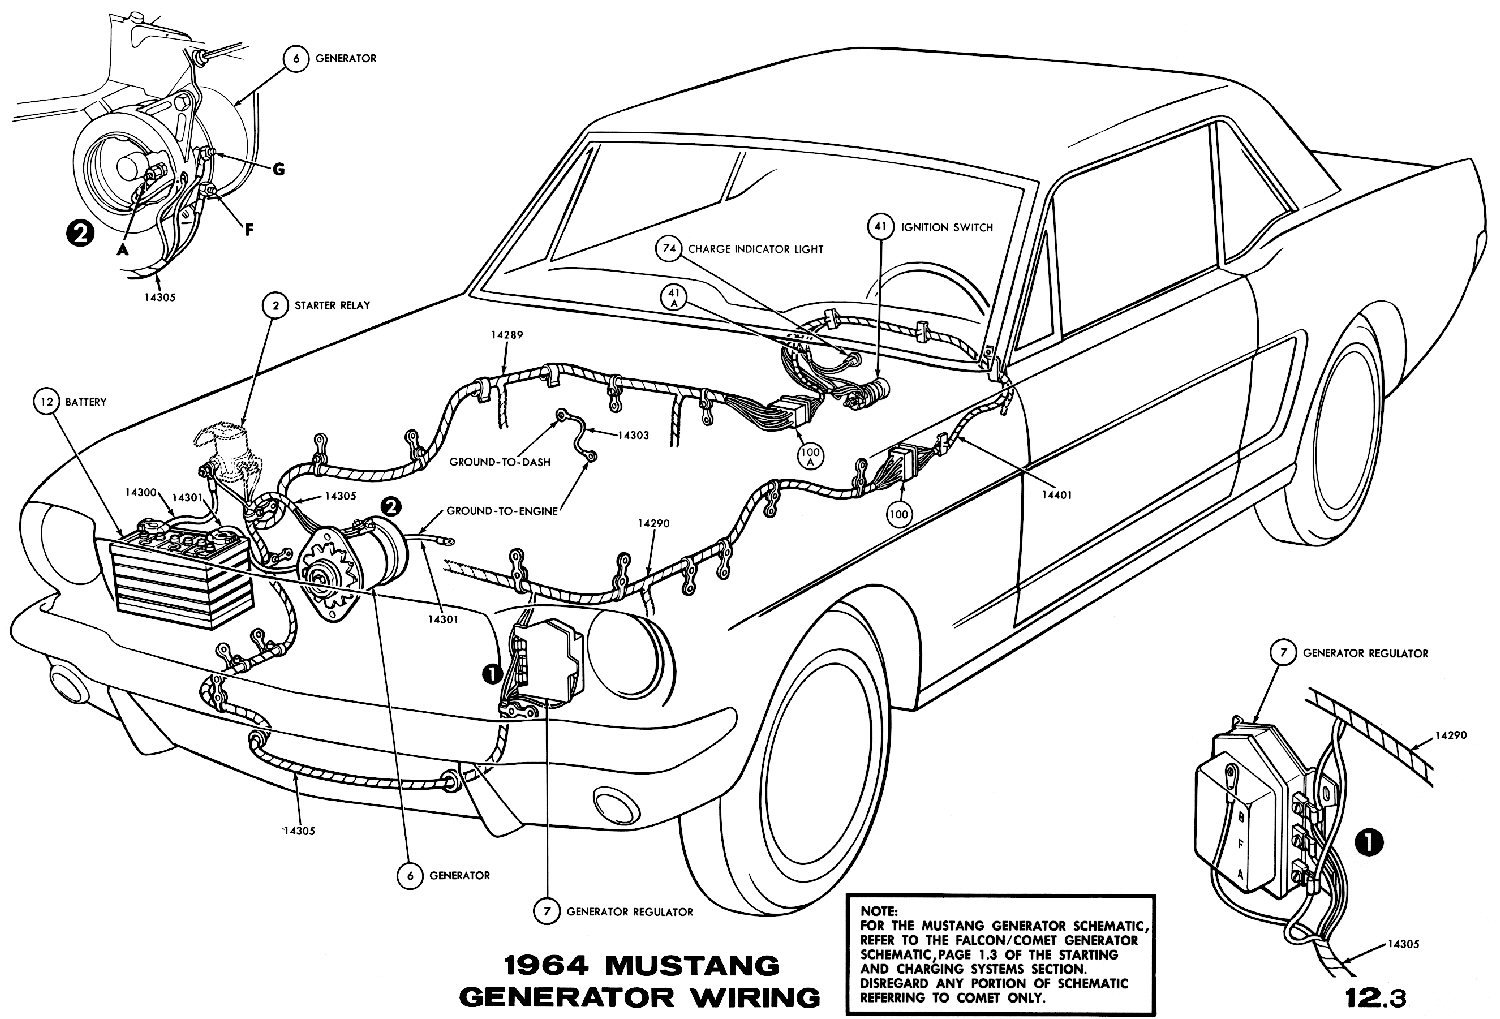 1964f 1964 mustang wiring diagrams average joe restoration 1966 mustang voltage regulator wiring diagram at gsmx.co